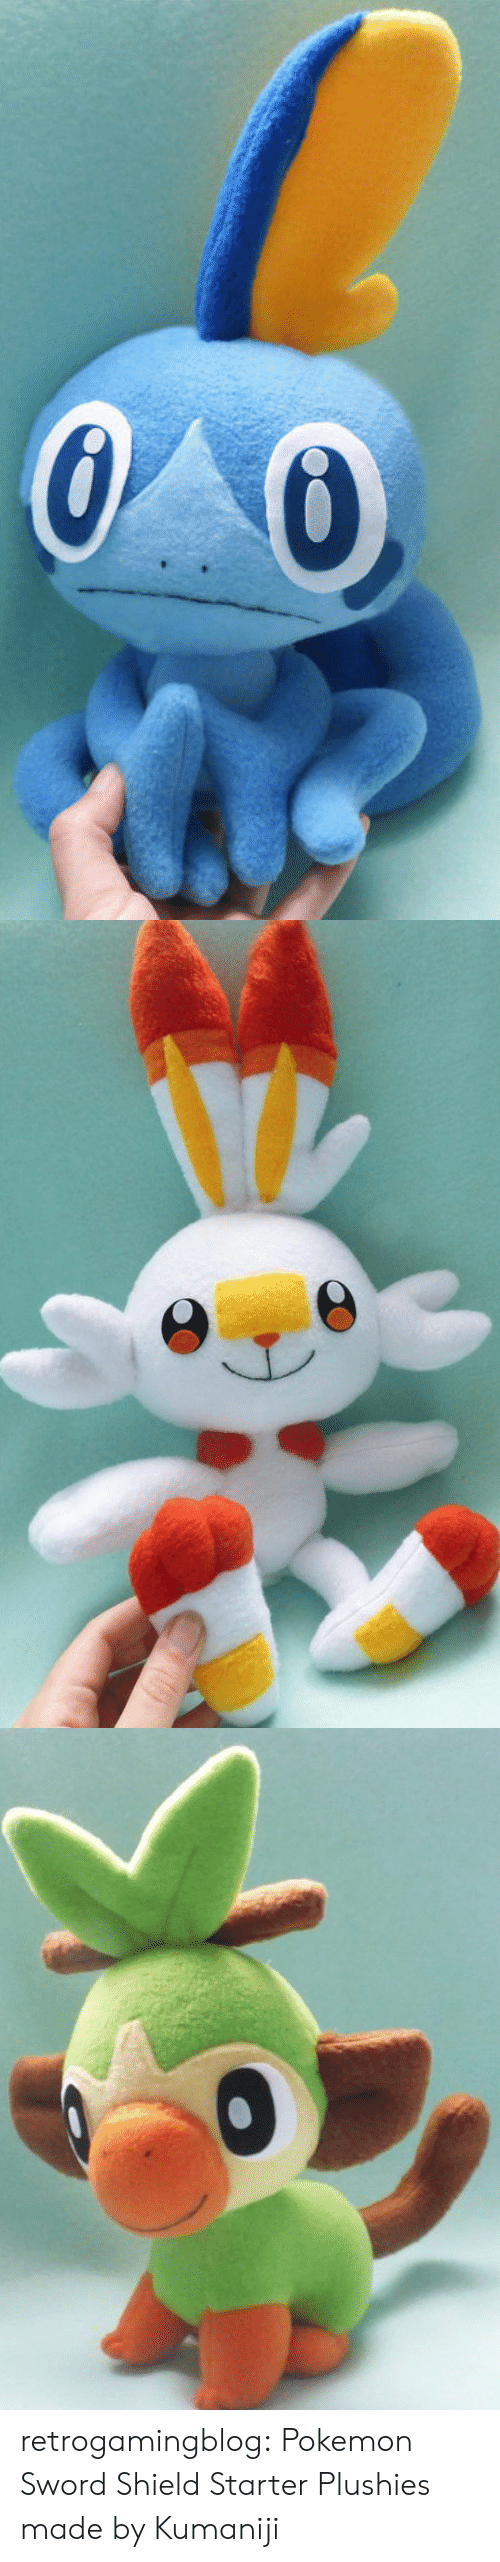 Pokemon, Tumblr, and Blog: retrogamingblog:  Pokemon Sword  Shield Starter Plushies made by Kumaniji